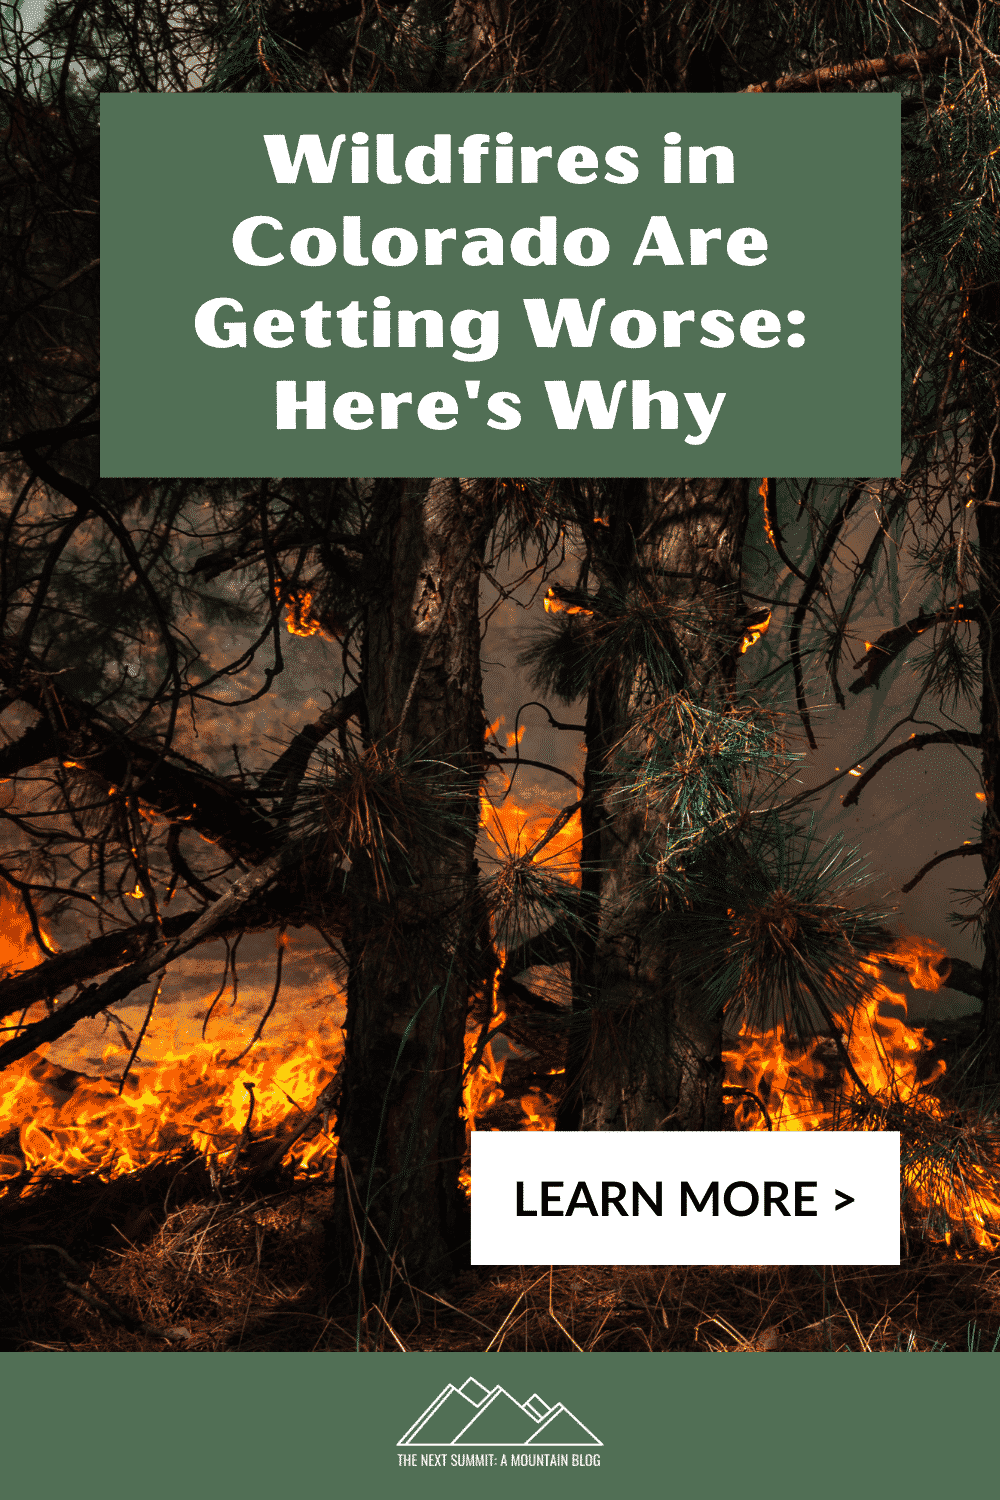 Wildfires in Colorado Are Getting Terrible: Here\'s 3 Reasons Why